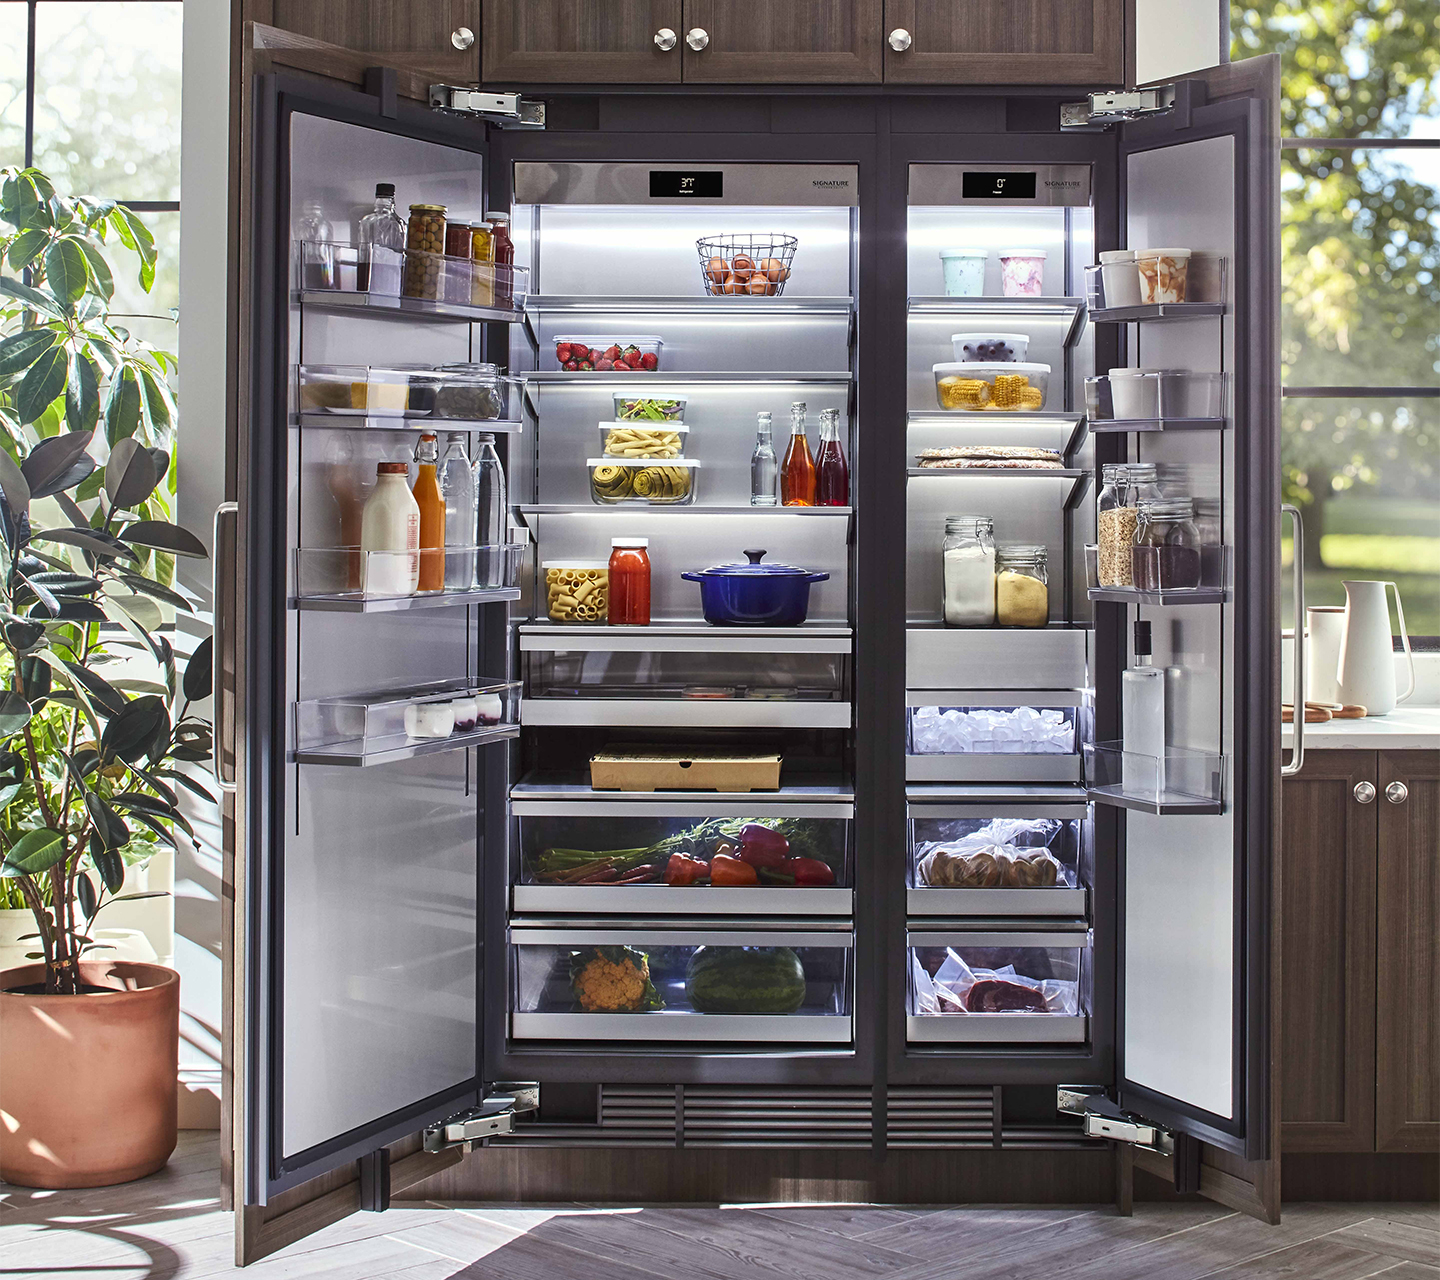 Built In Panel Ready Refrigerator & Freezer Column Options from Signature Kitchen Suite